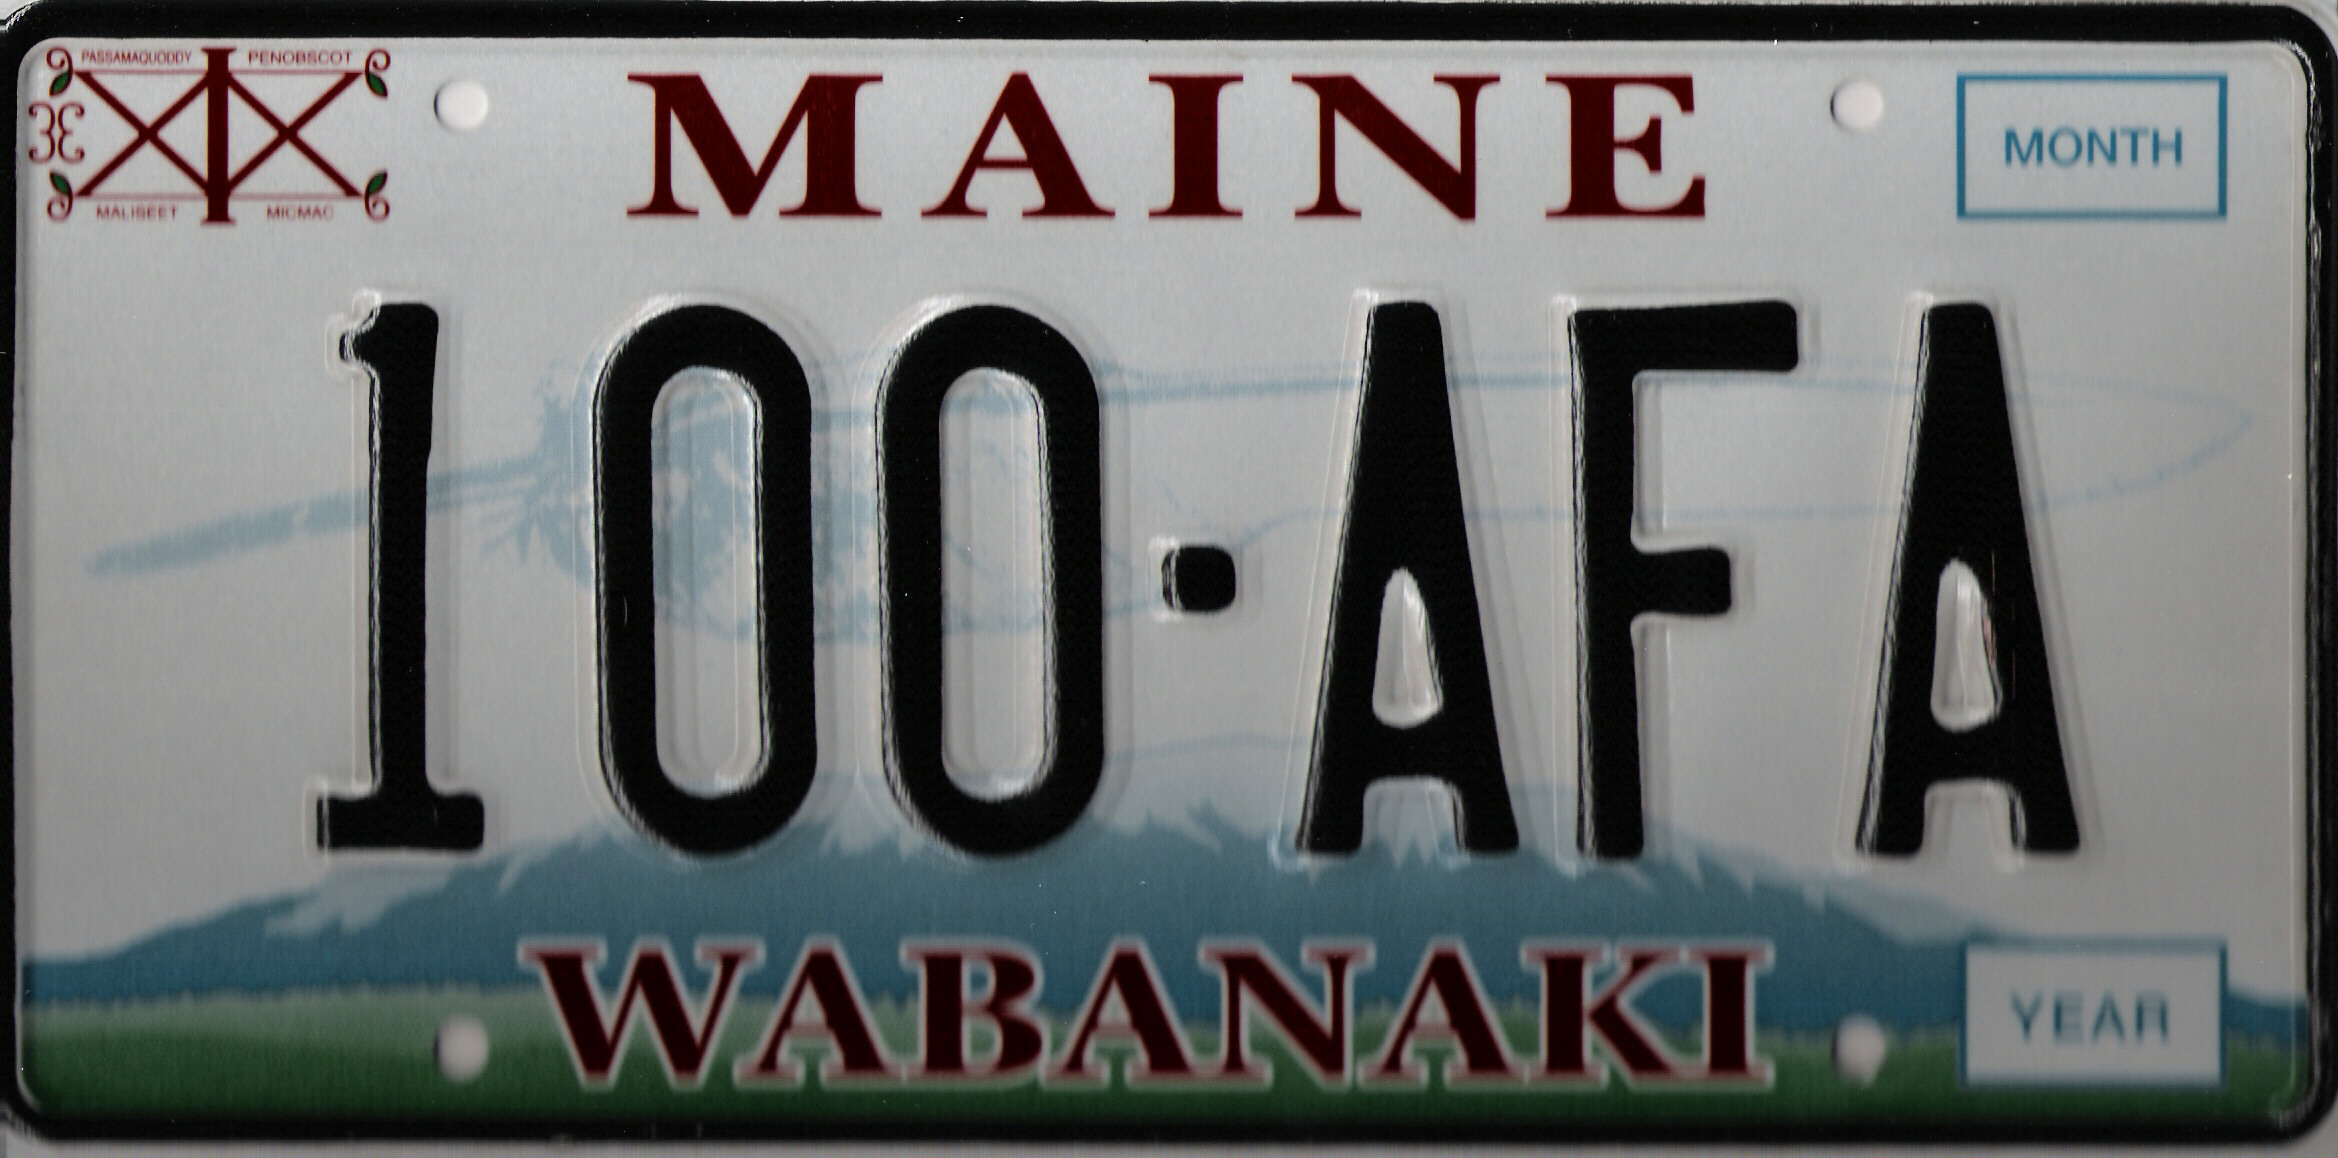 Image of the Wabanaki plate